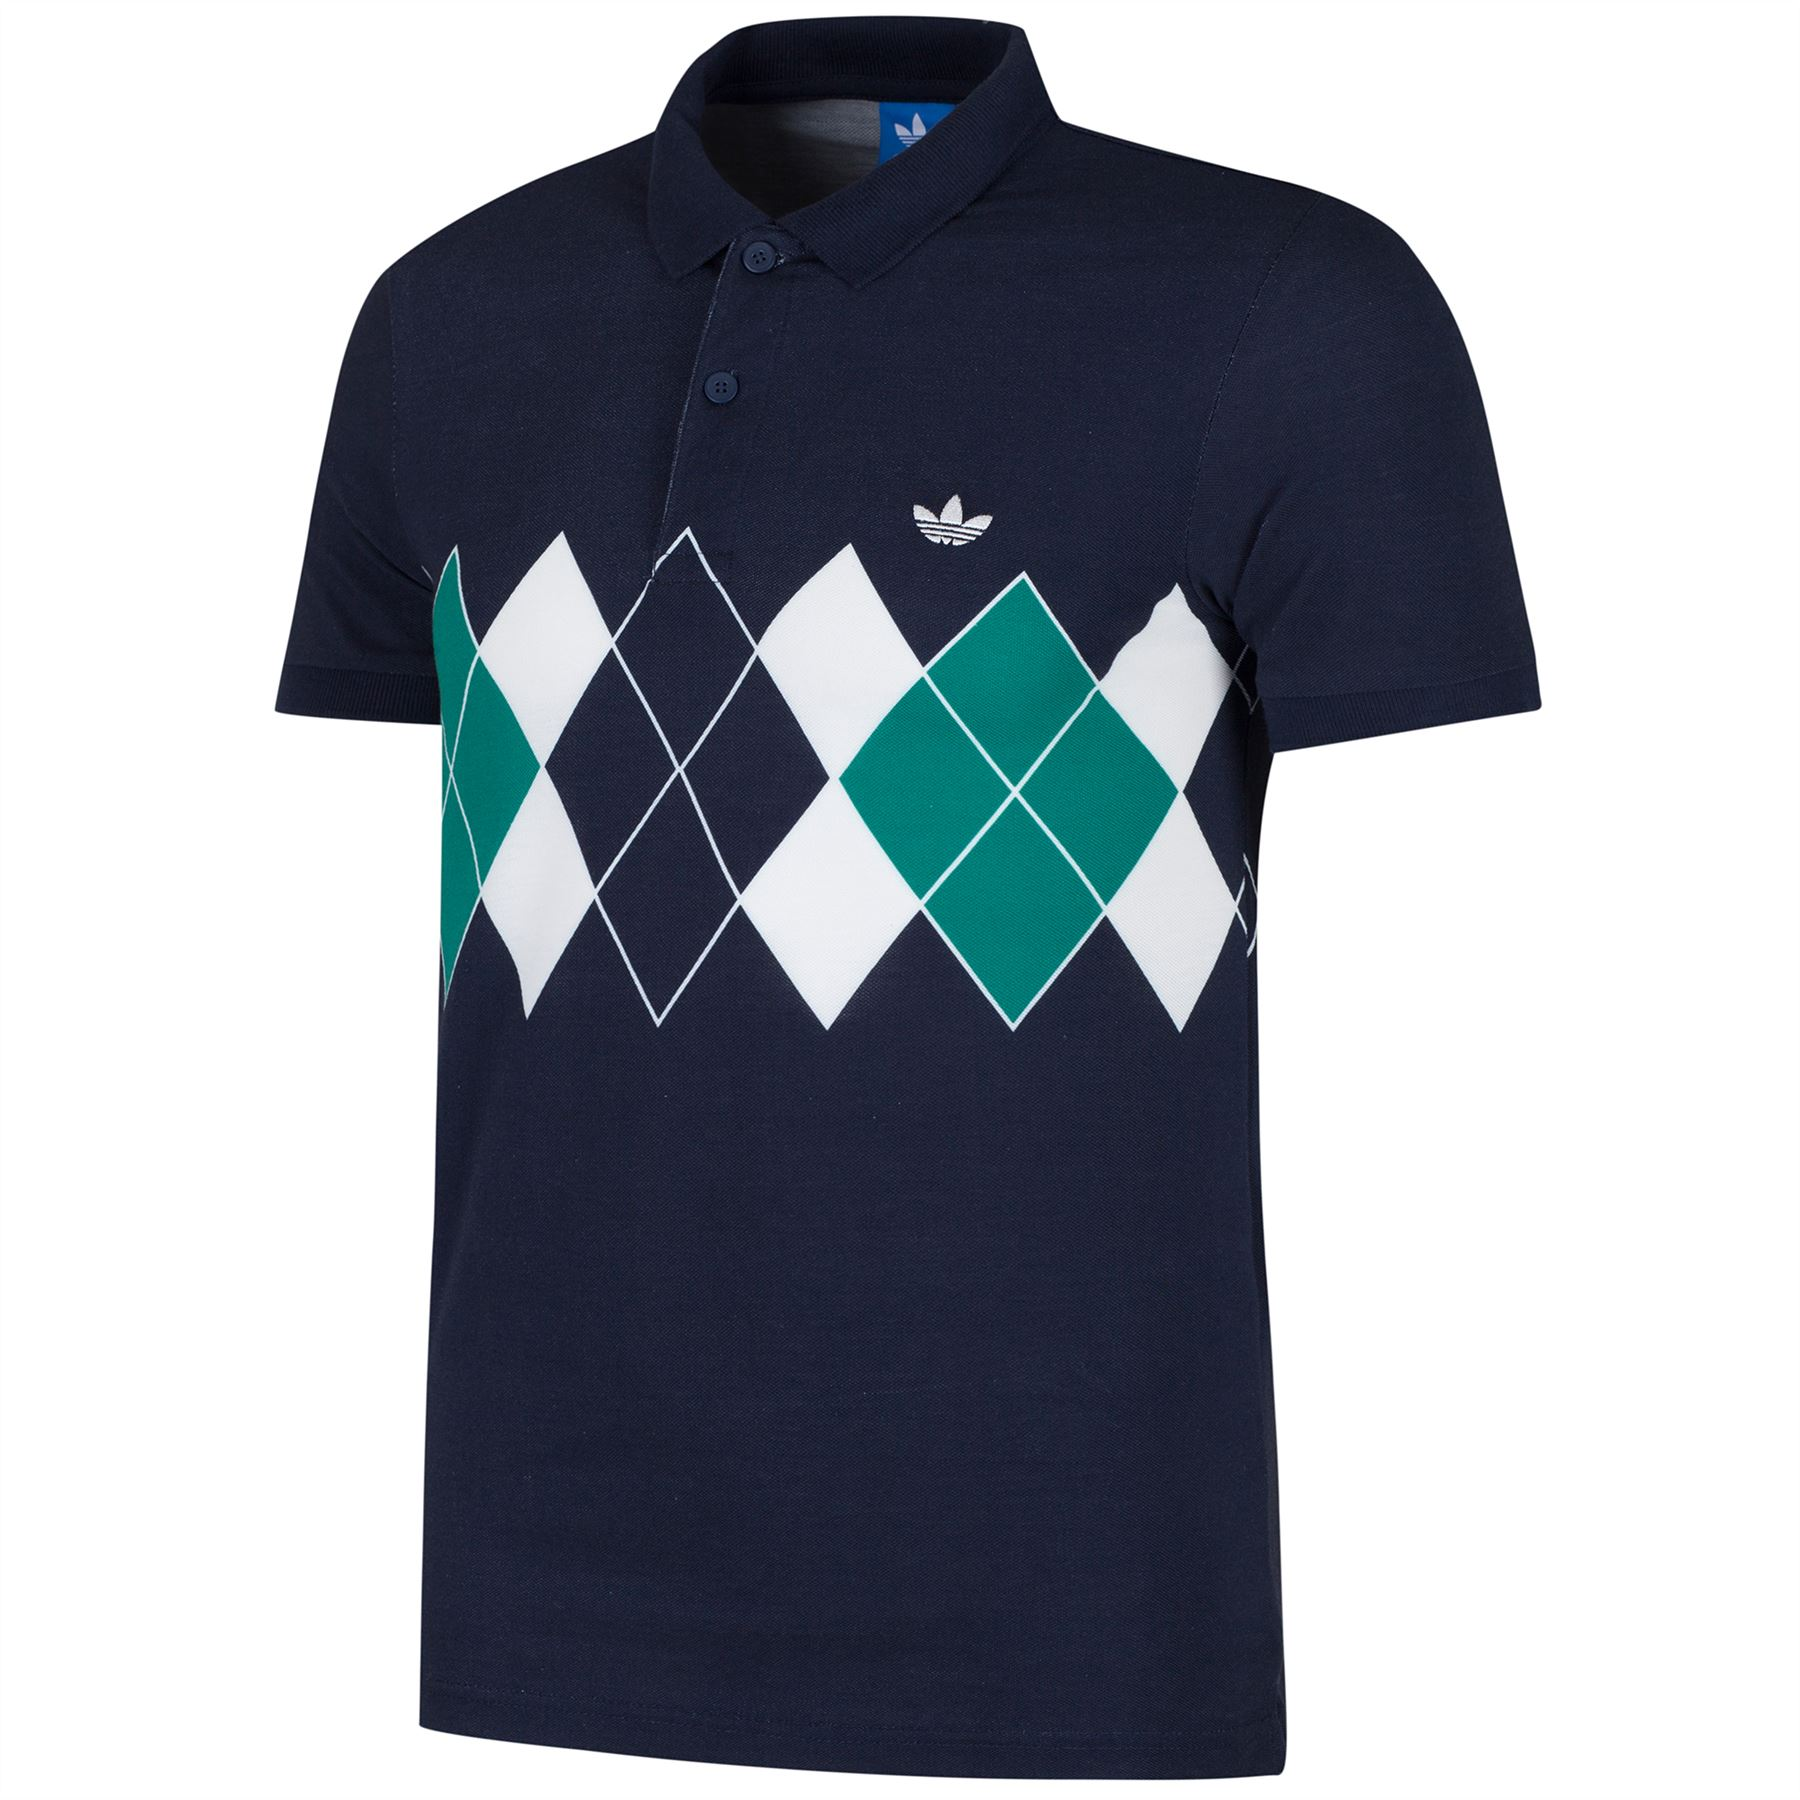 Adidas originals argyle ivan lendl men 39 s polo shirt white for Mens xs golf shirts